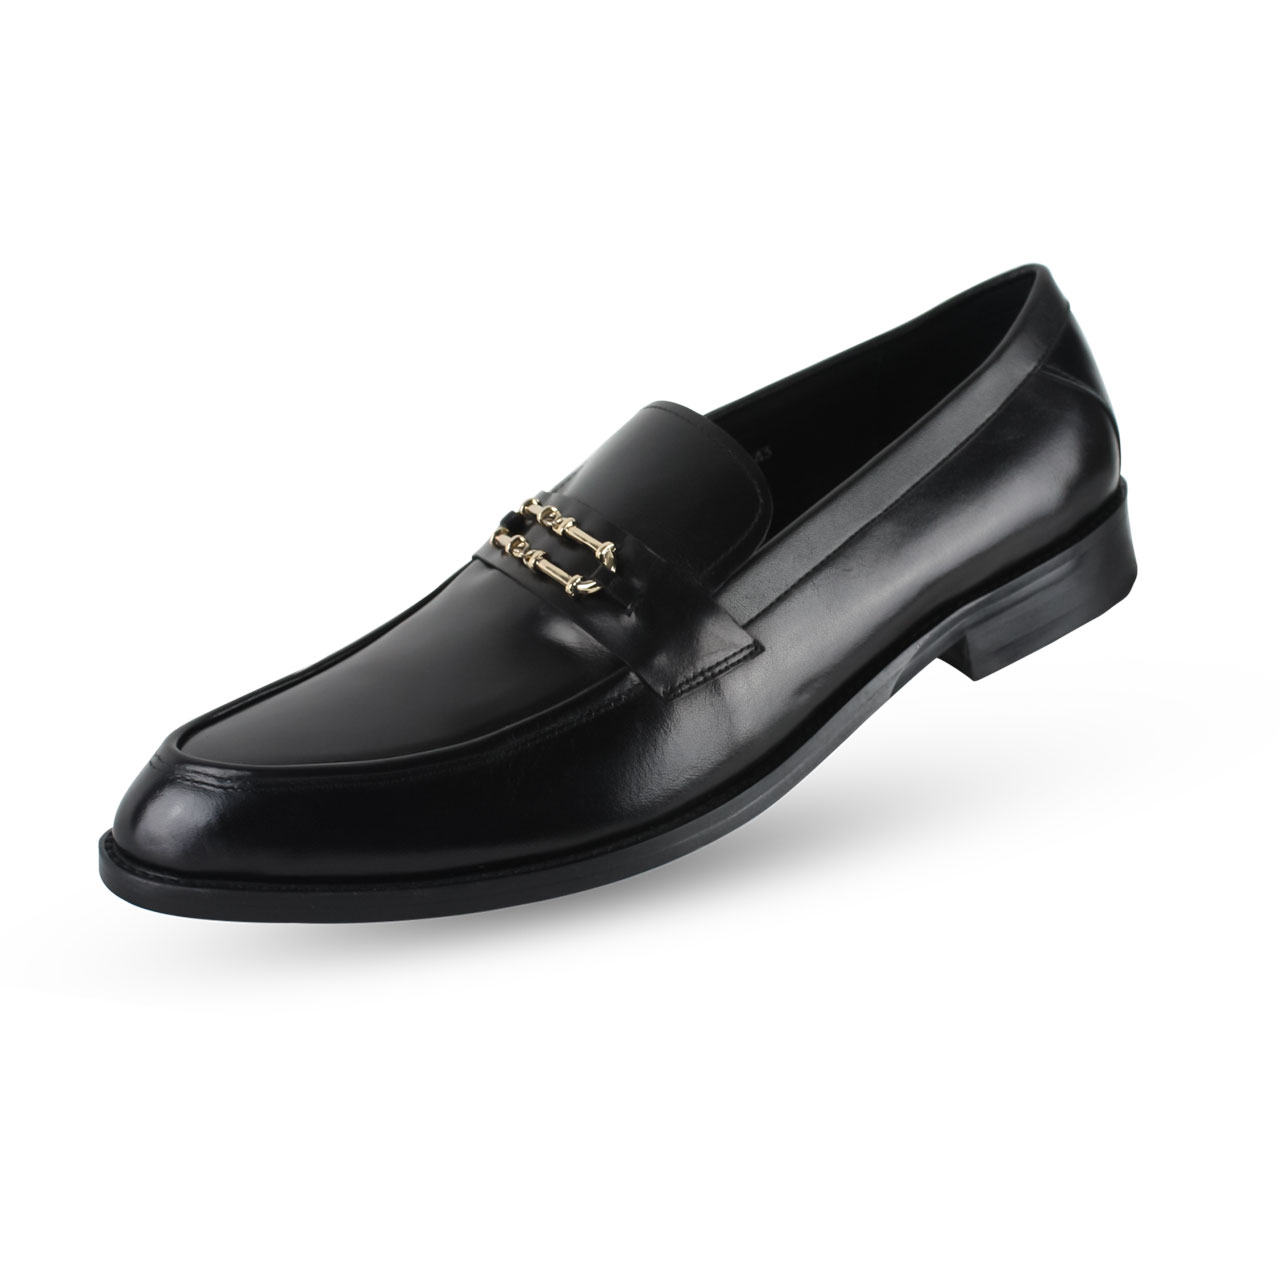 Men's Casual Leather Business Comfort Loafers